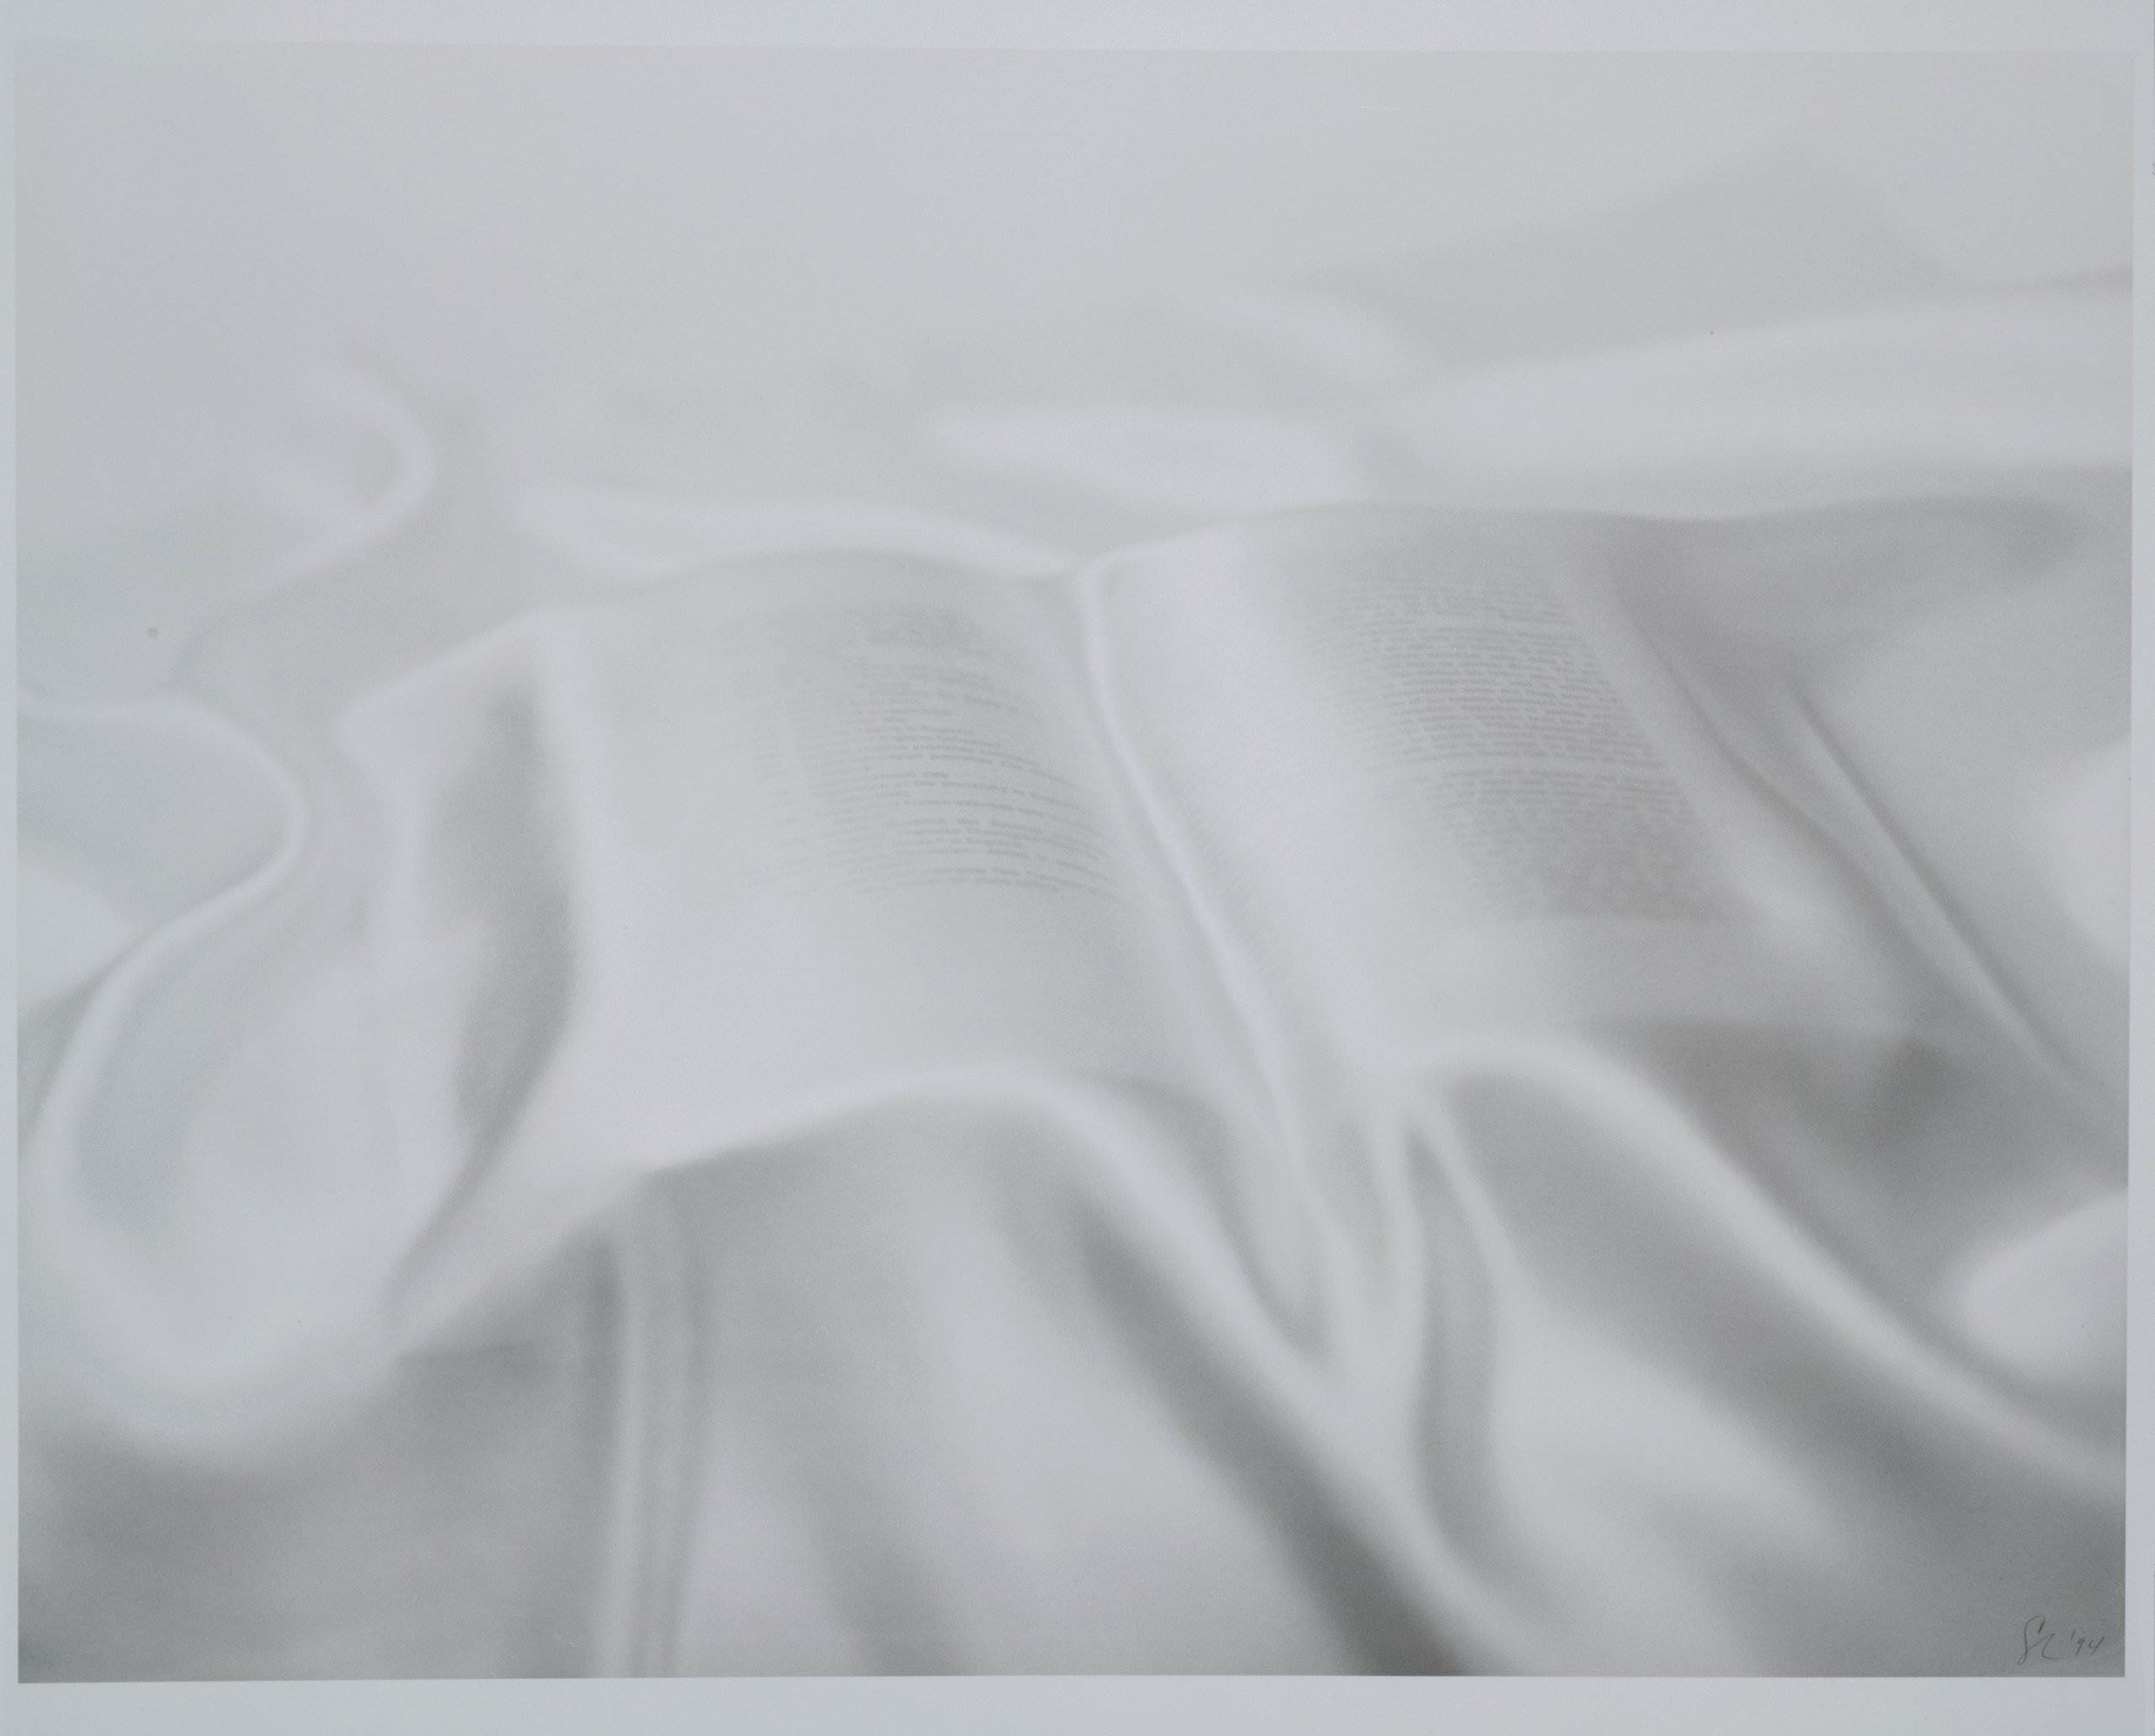 A pure white satin or silk sheet is draped over an open book. Lines of black text is visible through the sheet.